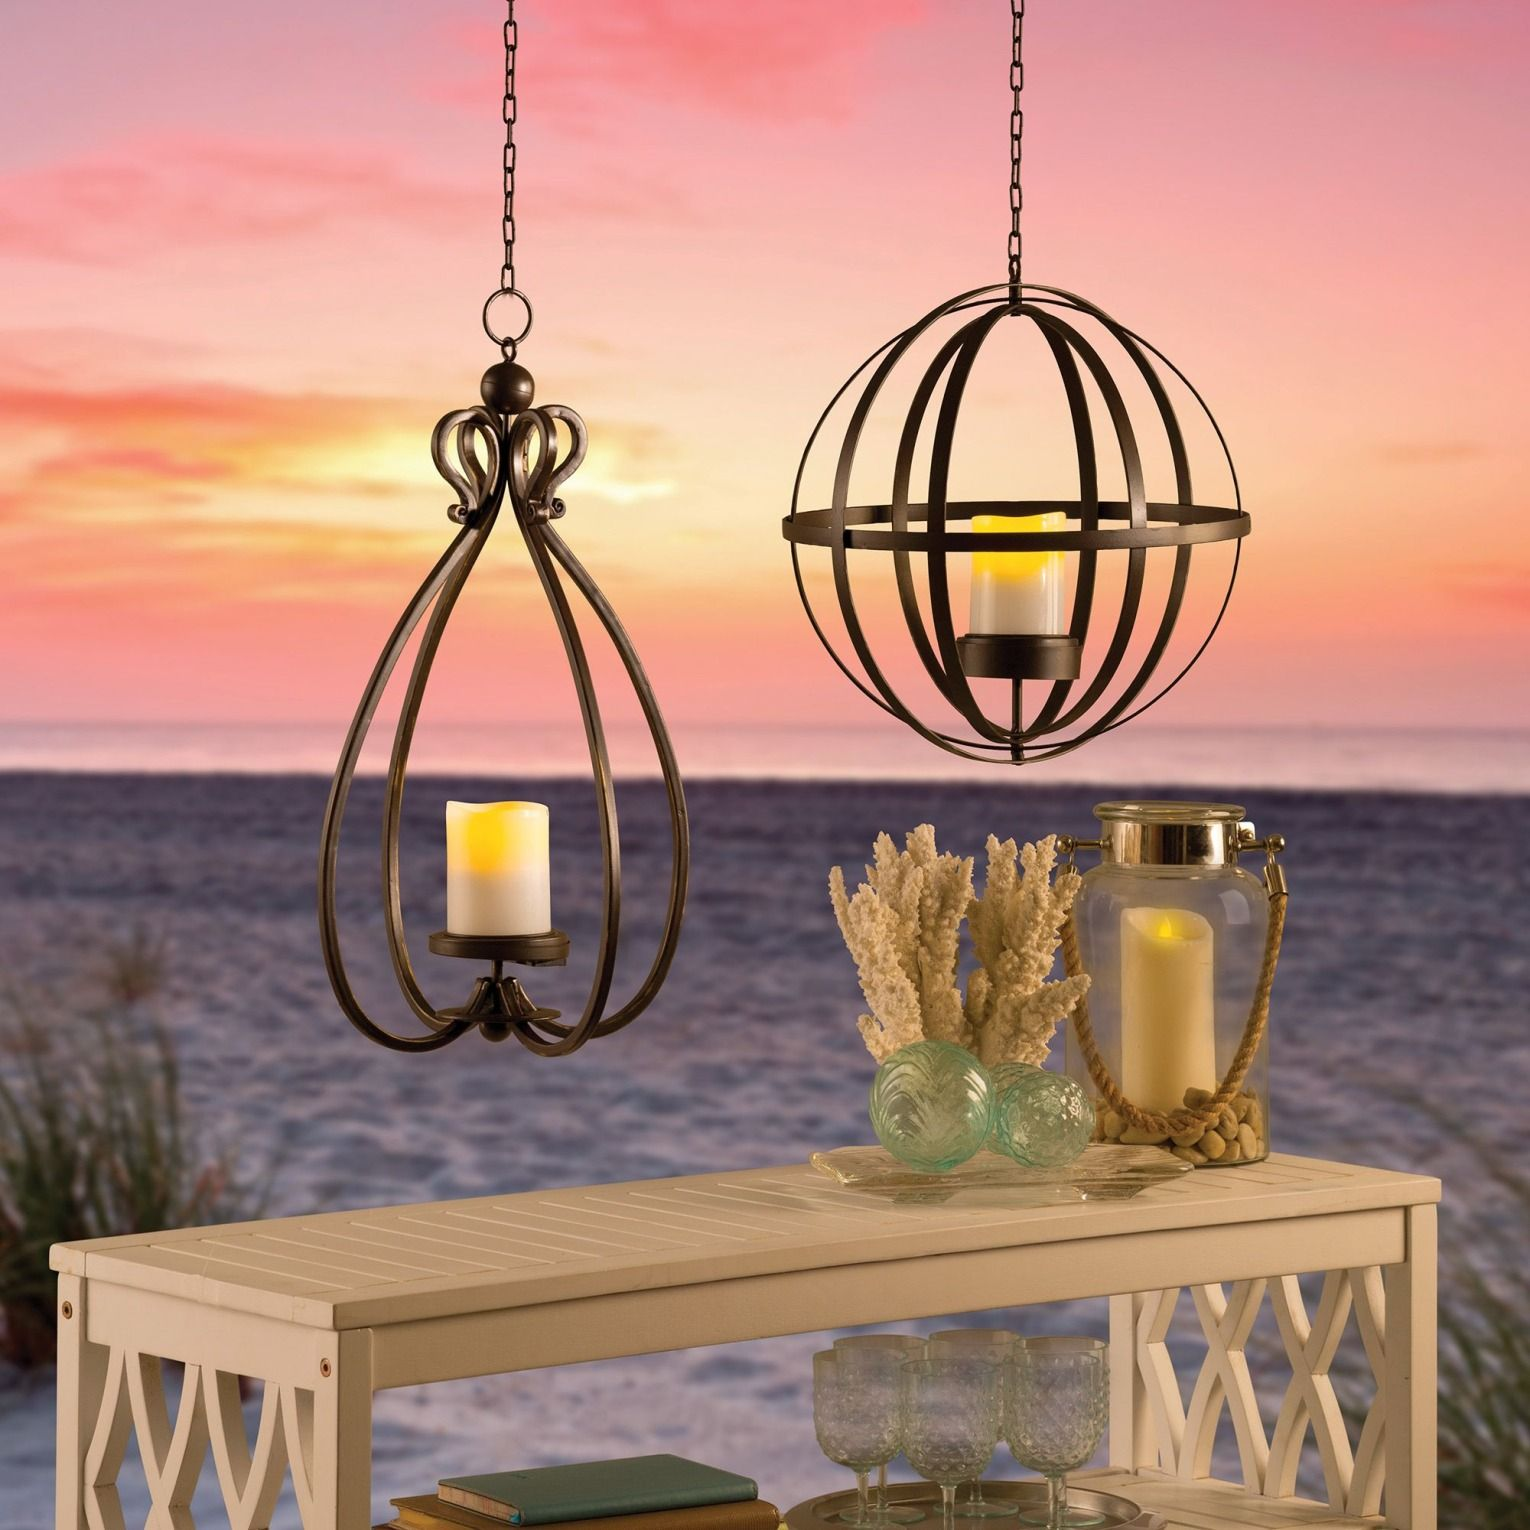 Hanging outdoor candle lanterns for patio - A Gorgeous Outdoor Lighting Option These Solar Candle Lanterns Come In 2 Shapes Round